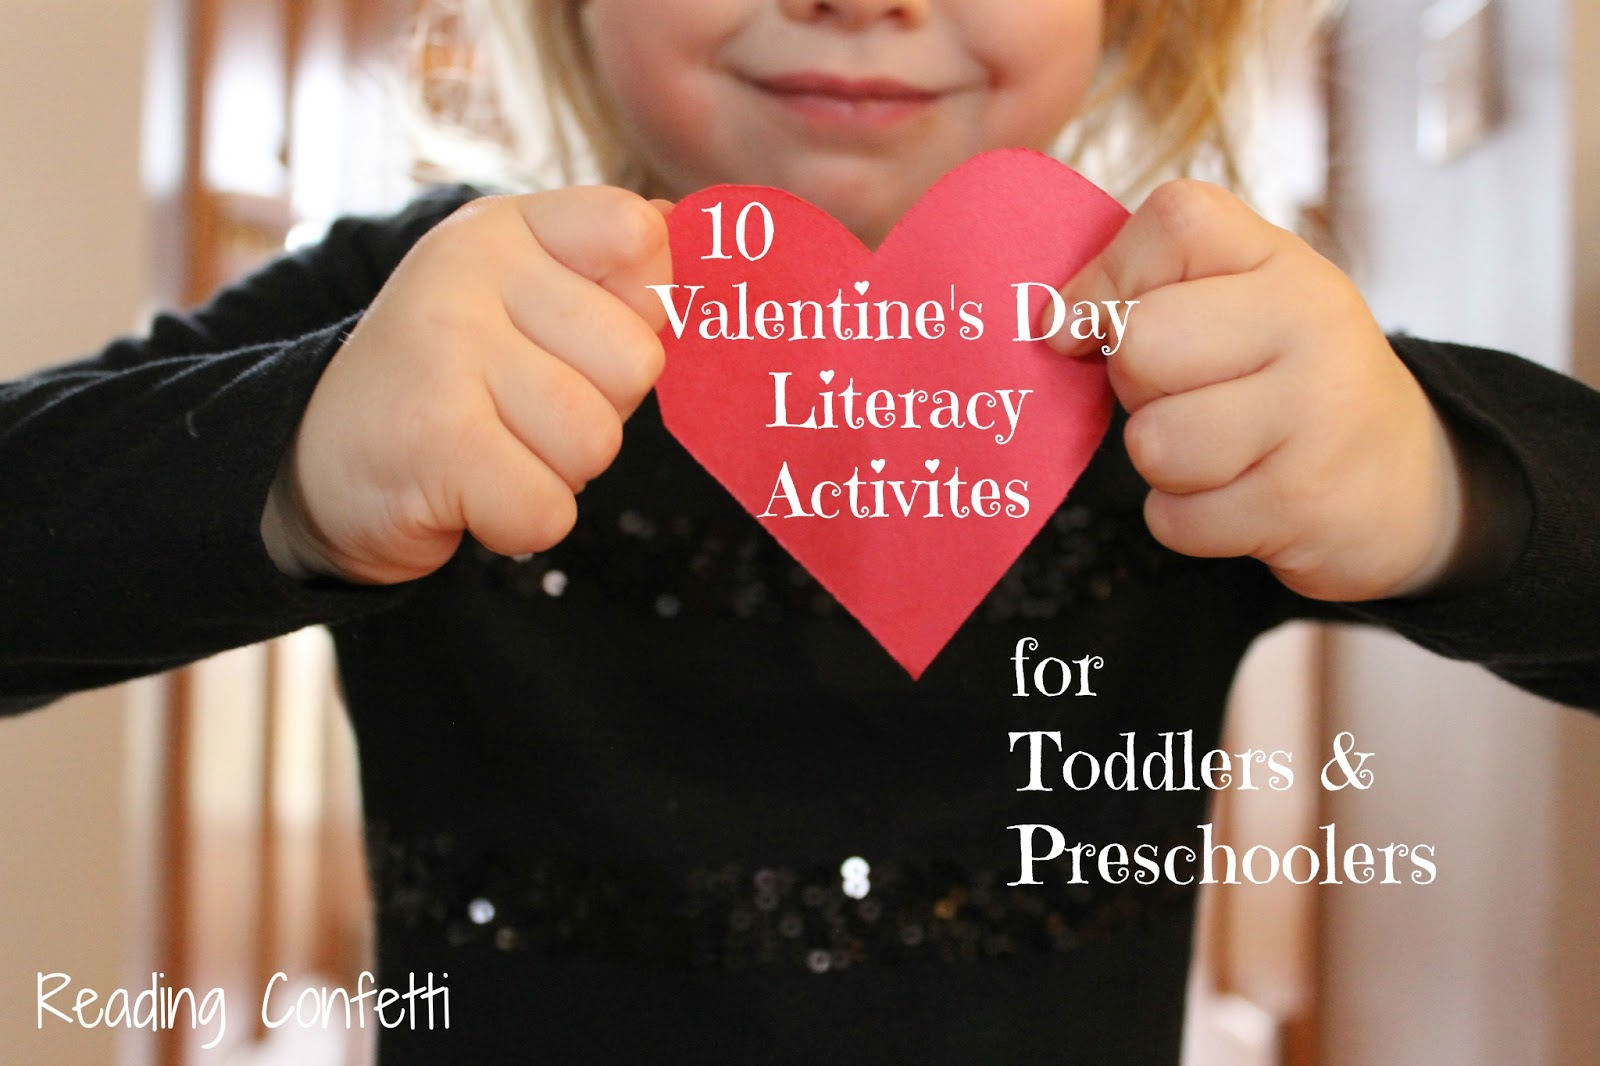 10 Valentine S Day Literacy Activities For Toddlers And Preschoolers Reading Confetti